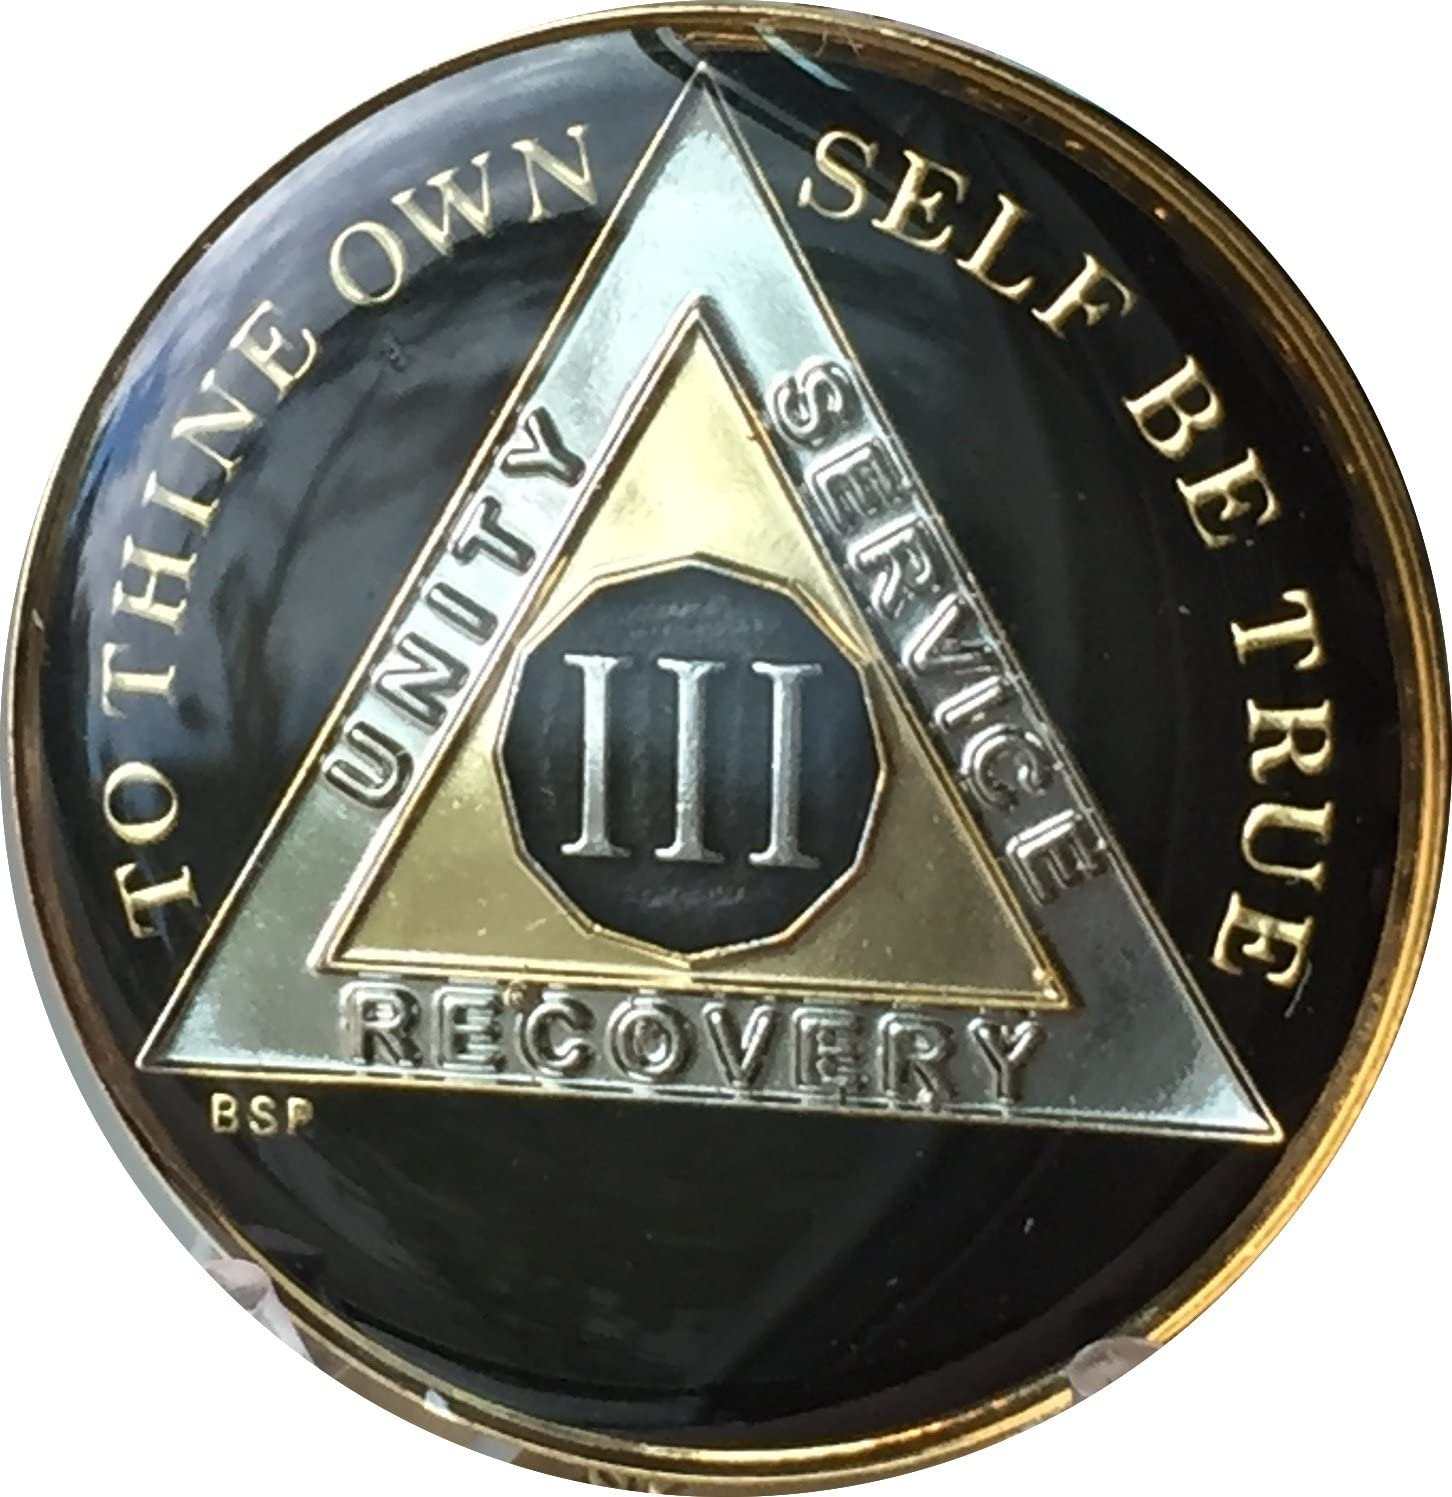 3 Year Classic Black Very popular AA Superior Sobriety Anonymous Alcoholics Medallion